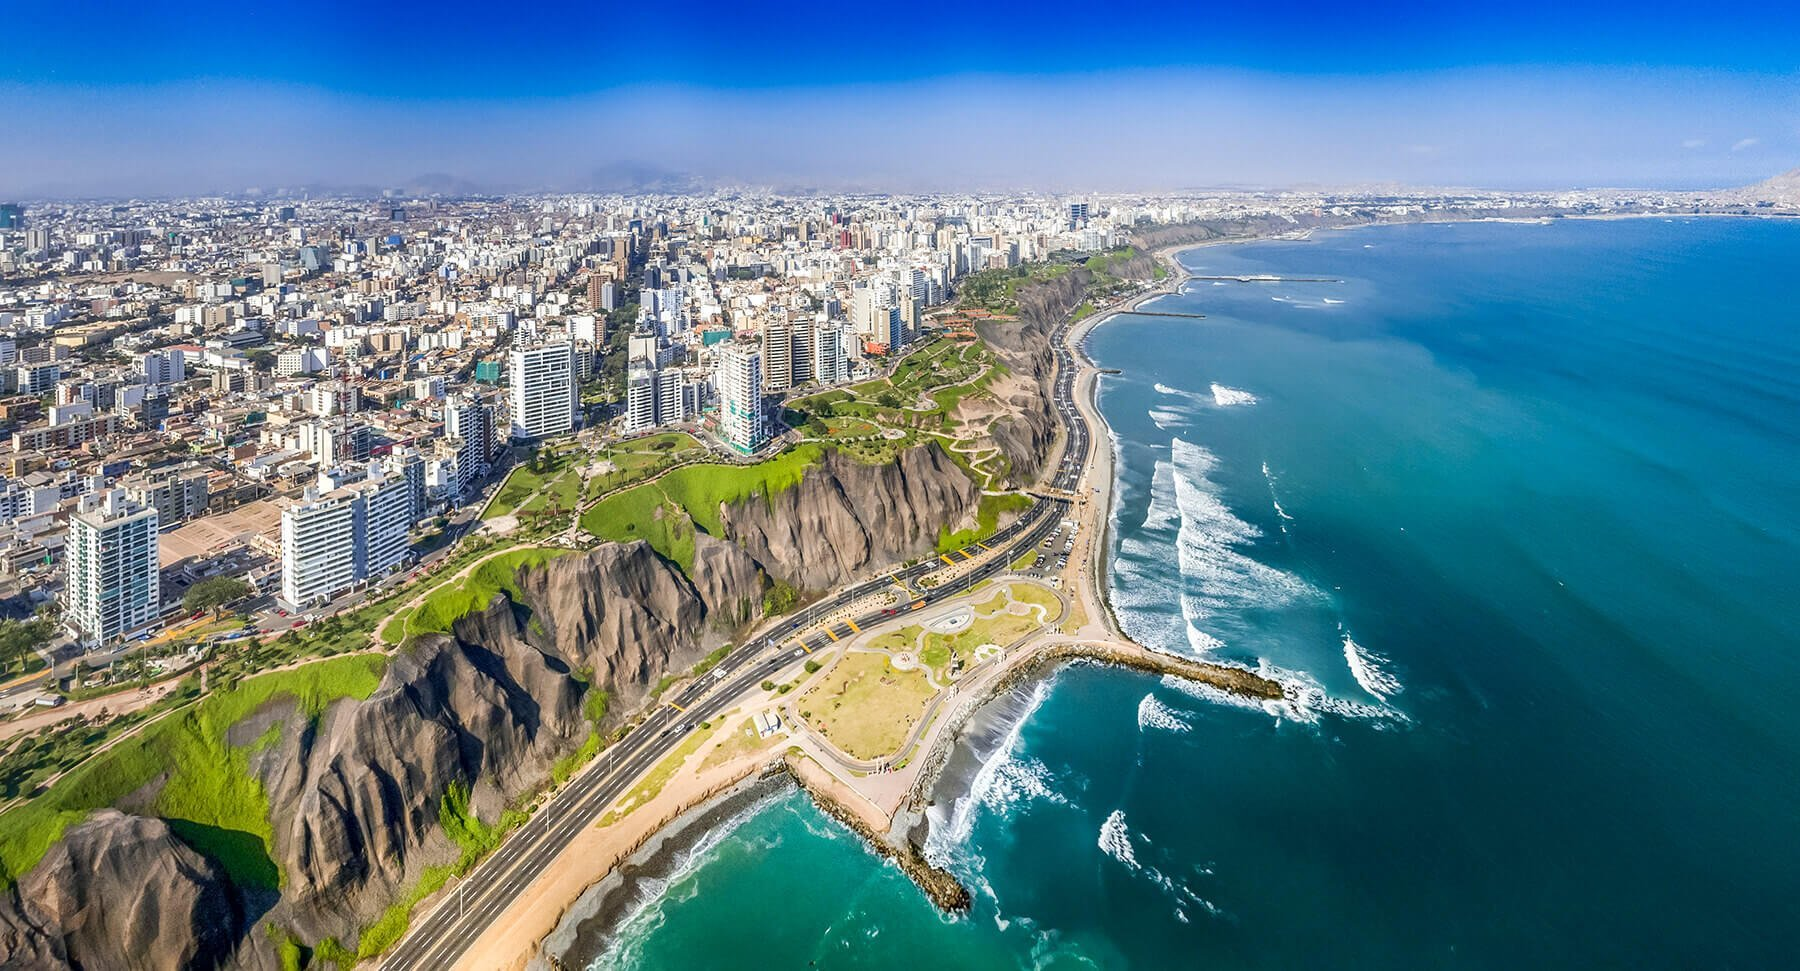 The Miraflores district in Lima with the Costa Verde highway along the ocean